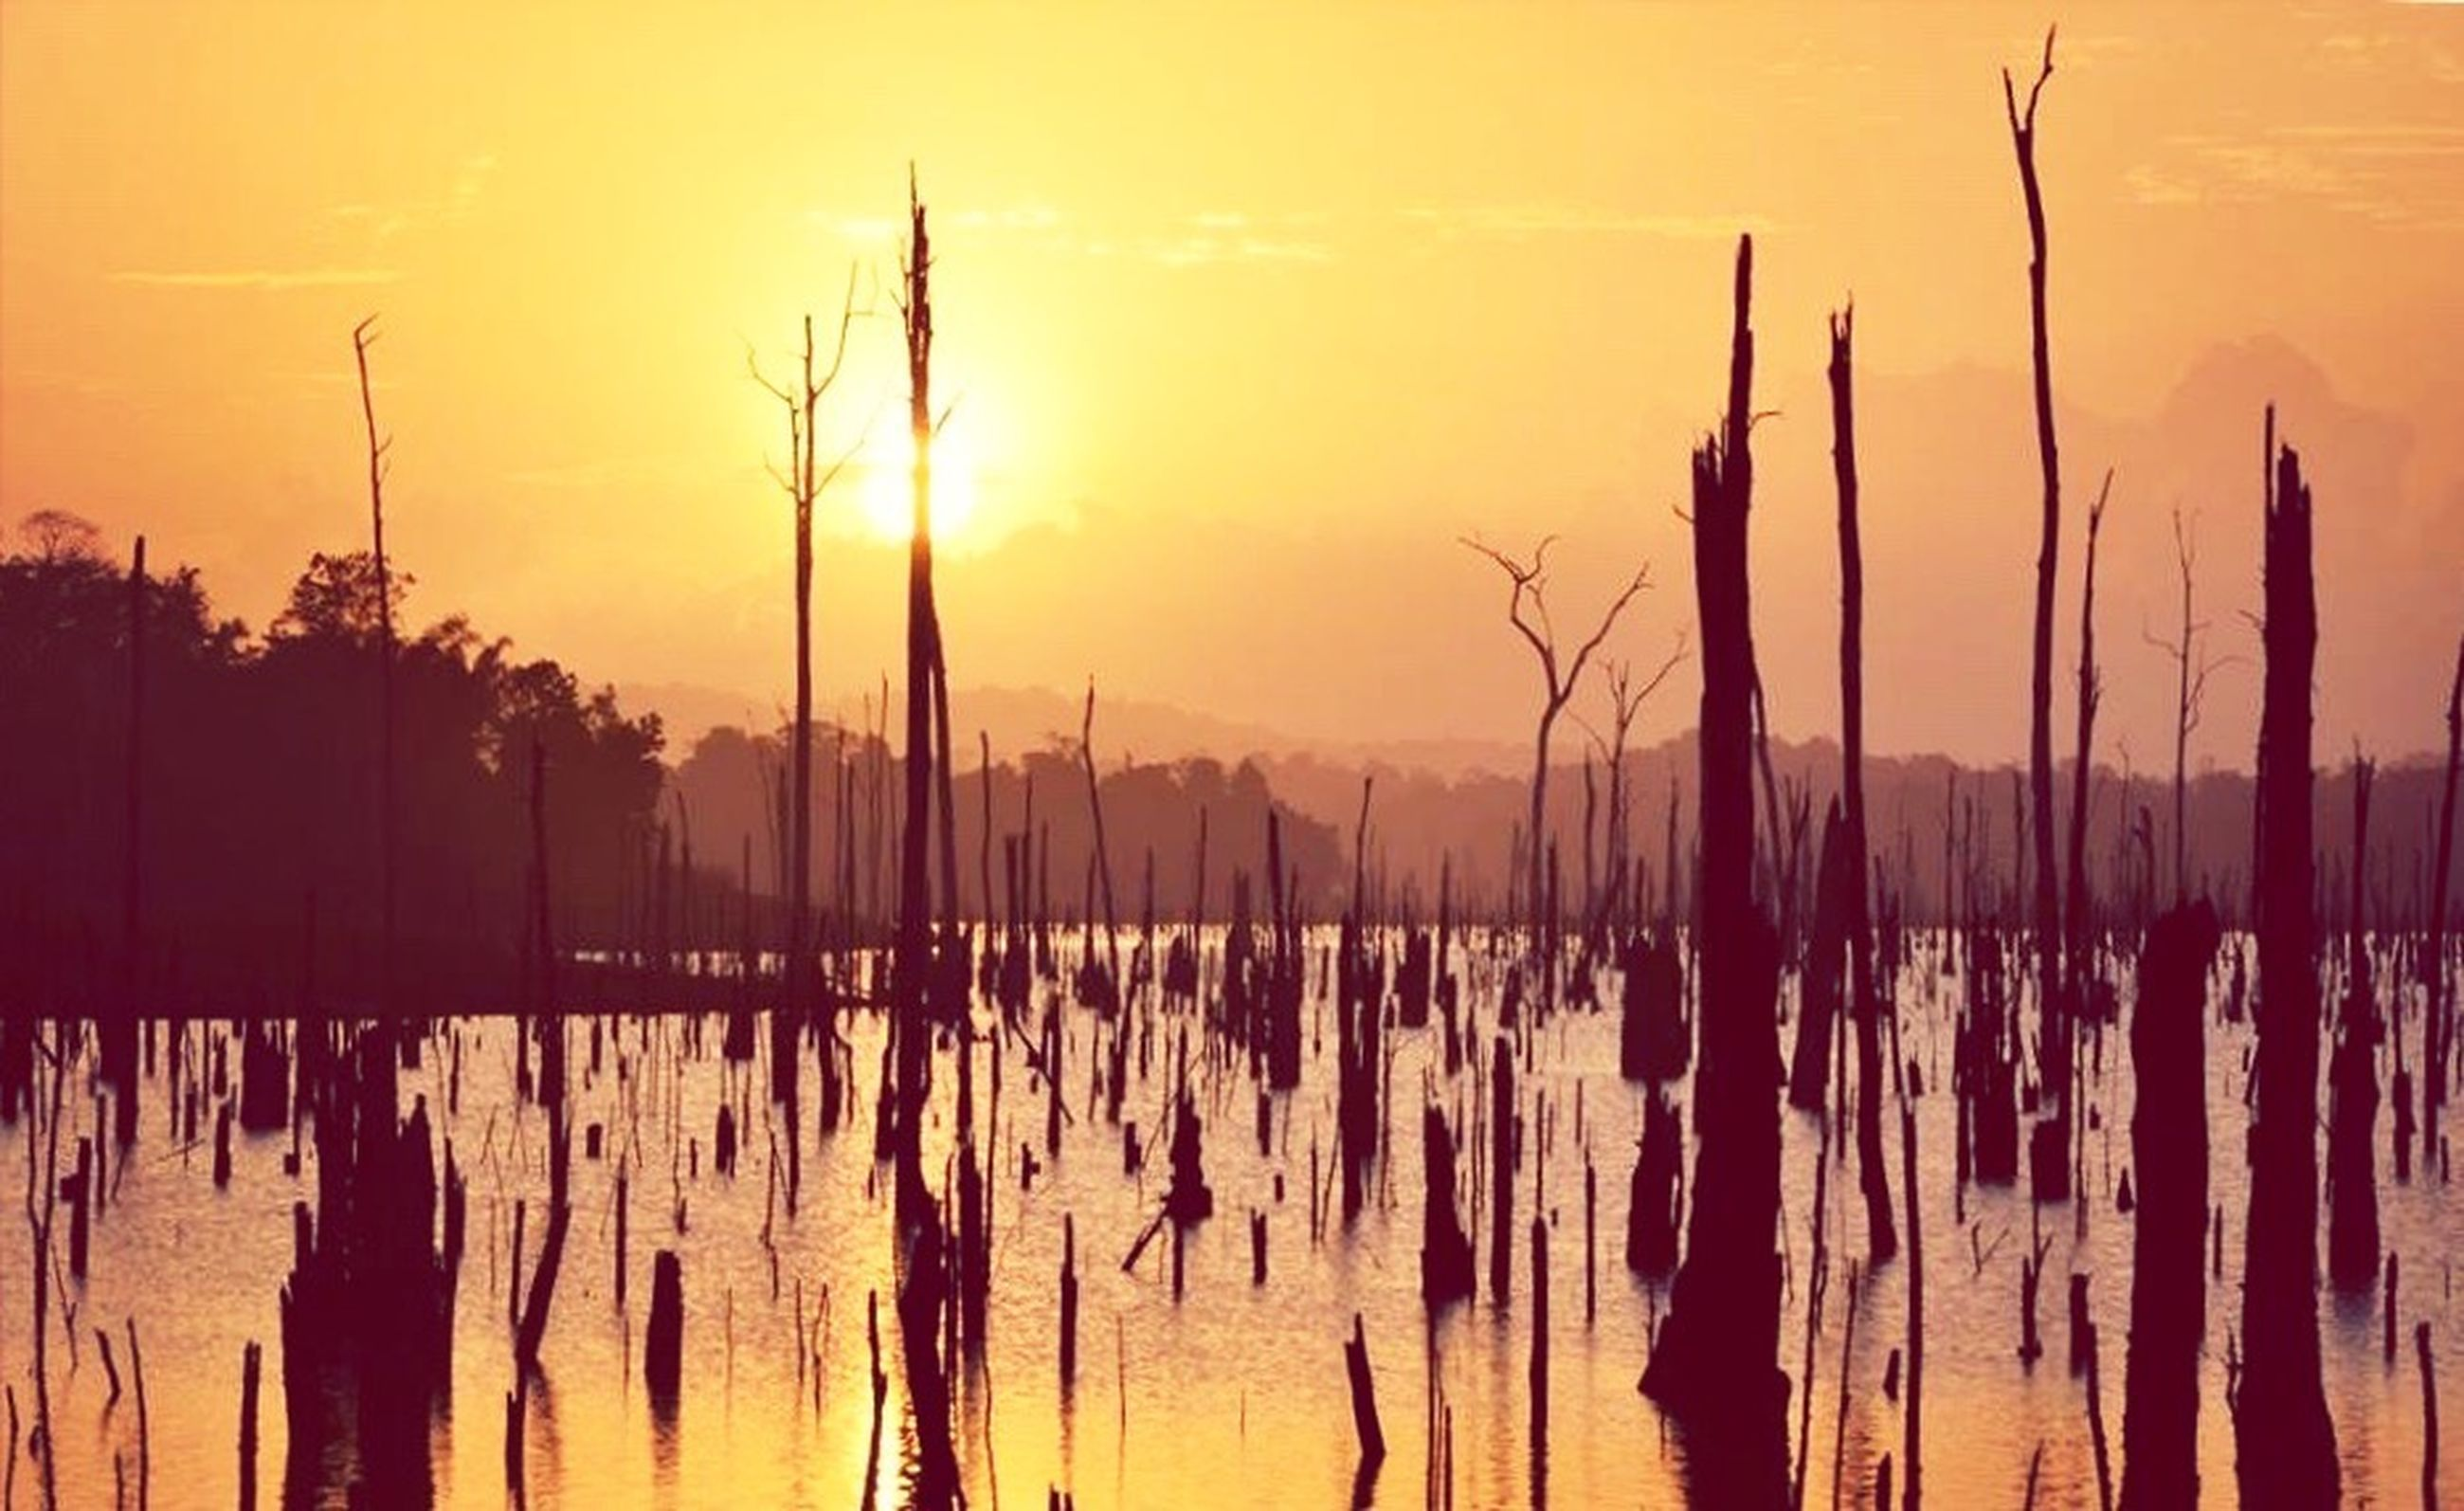 sunset, orange color, tranquility, tranquil scene, silhouette, scenics, beauty in nature, water, nature, reflection, idyllic, sky, sun, lake, wooden post, outdoors, no people, landscape, majestic, non-urban scene